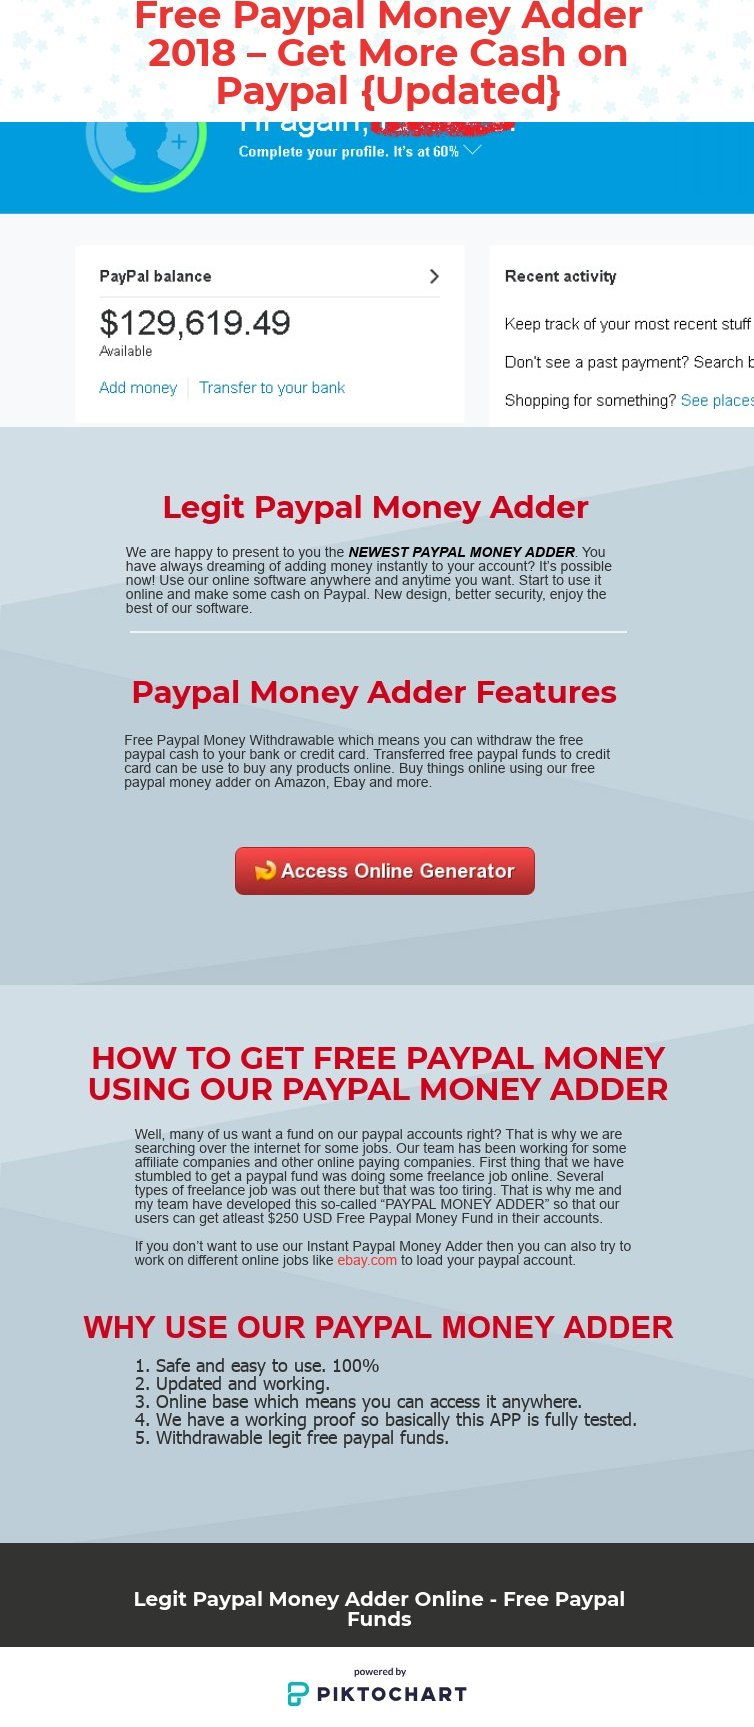 free paypal money adder 2018 get more cash on paypal piktochart visual editor